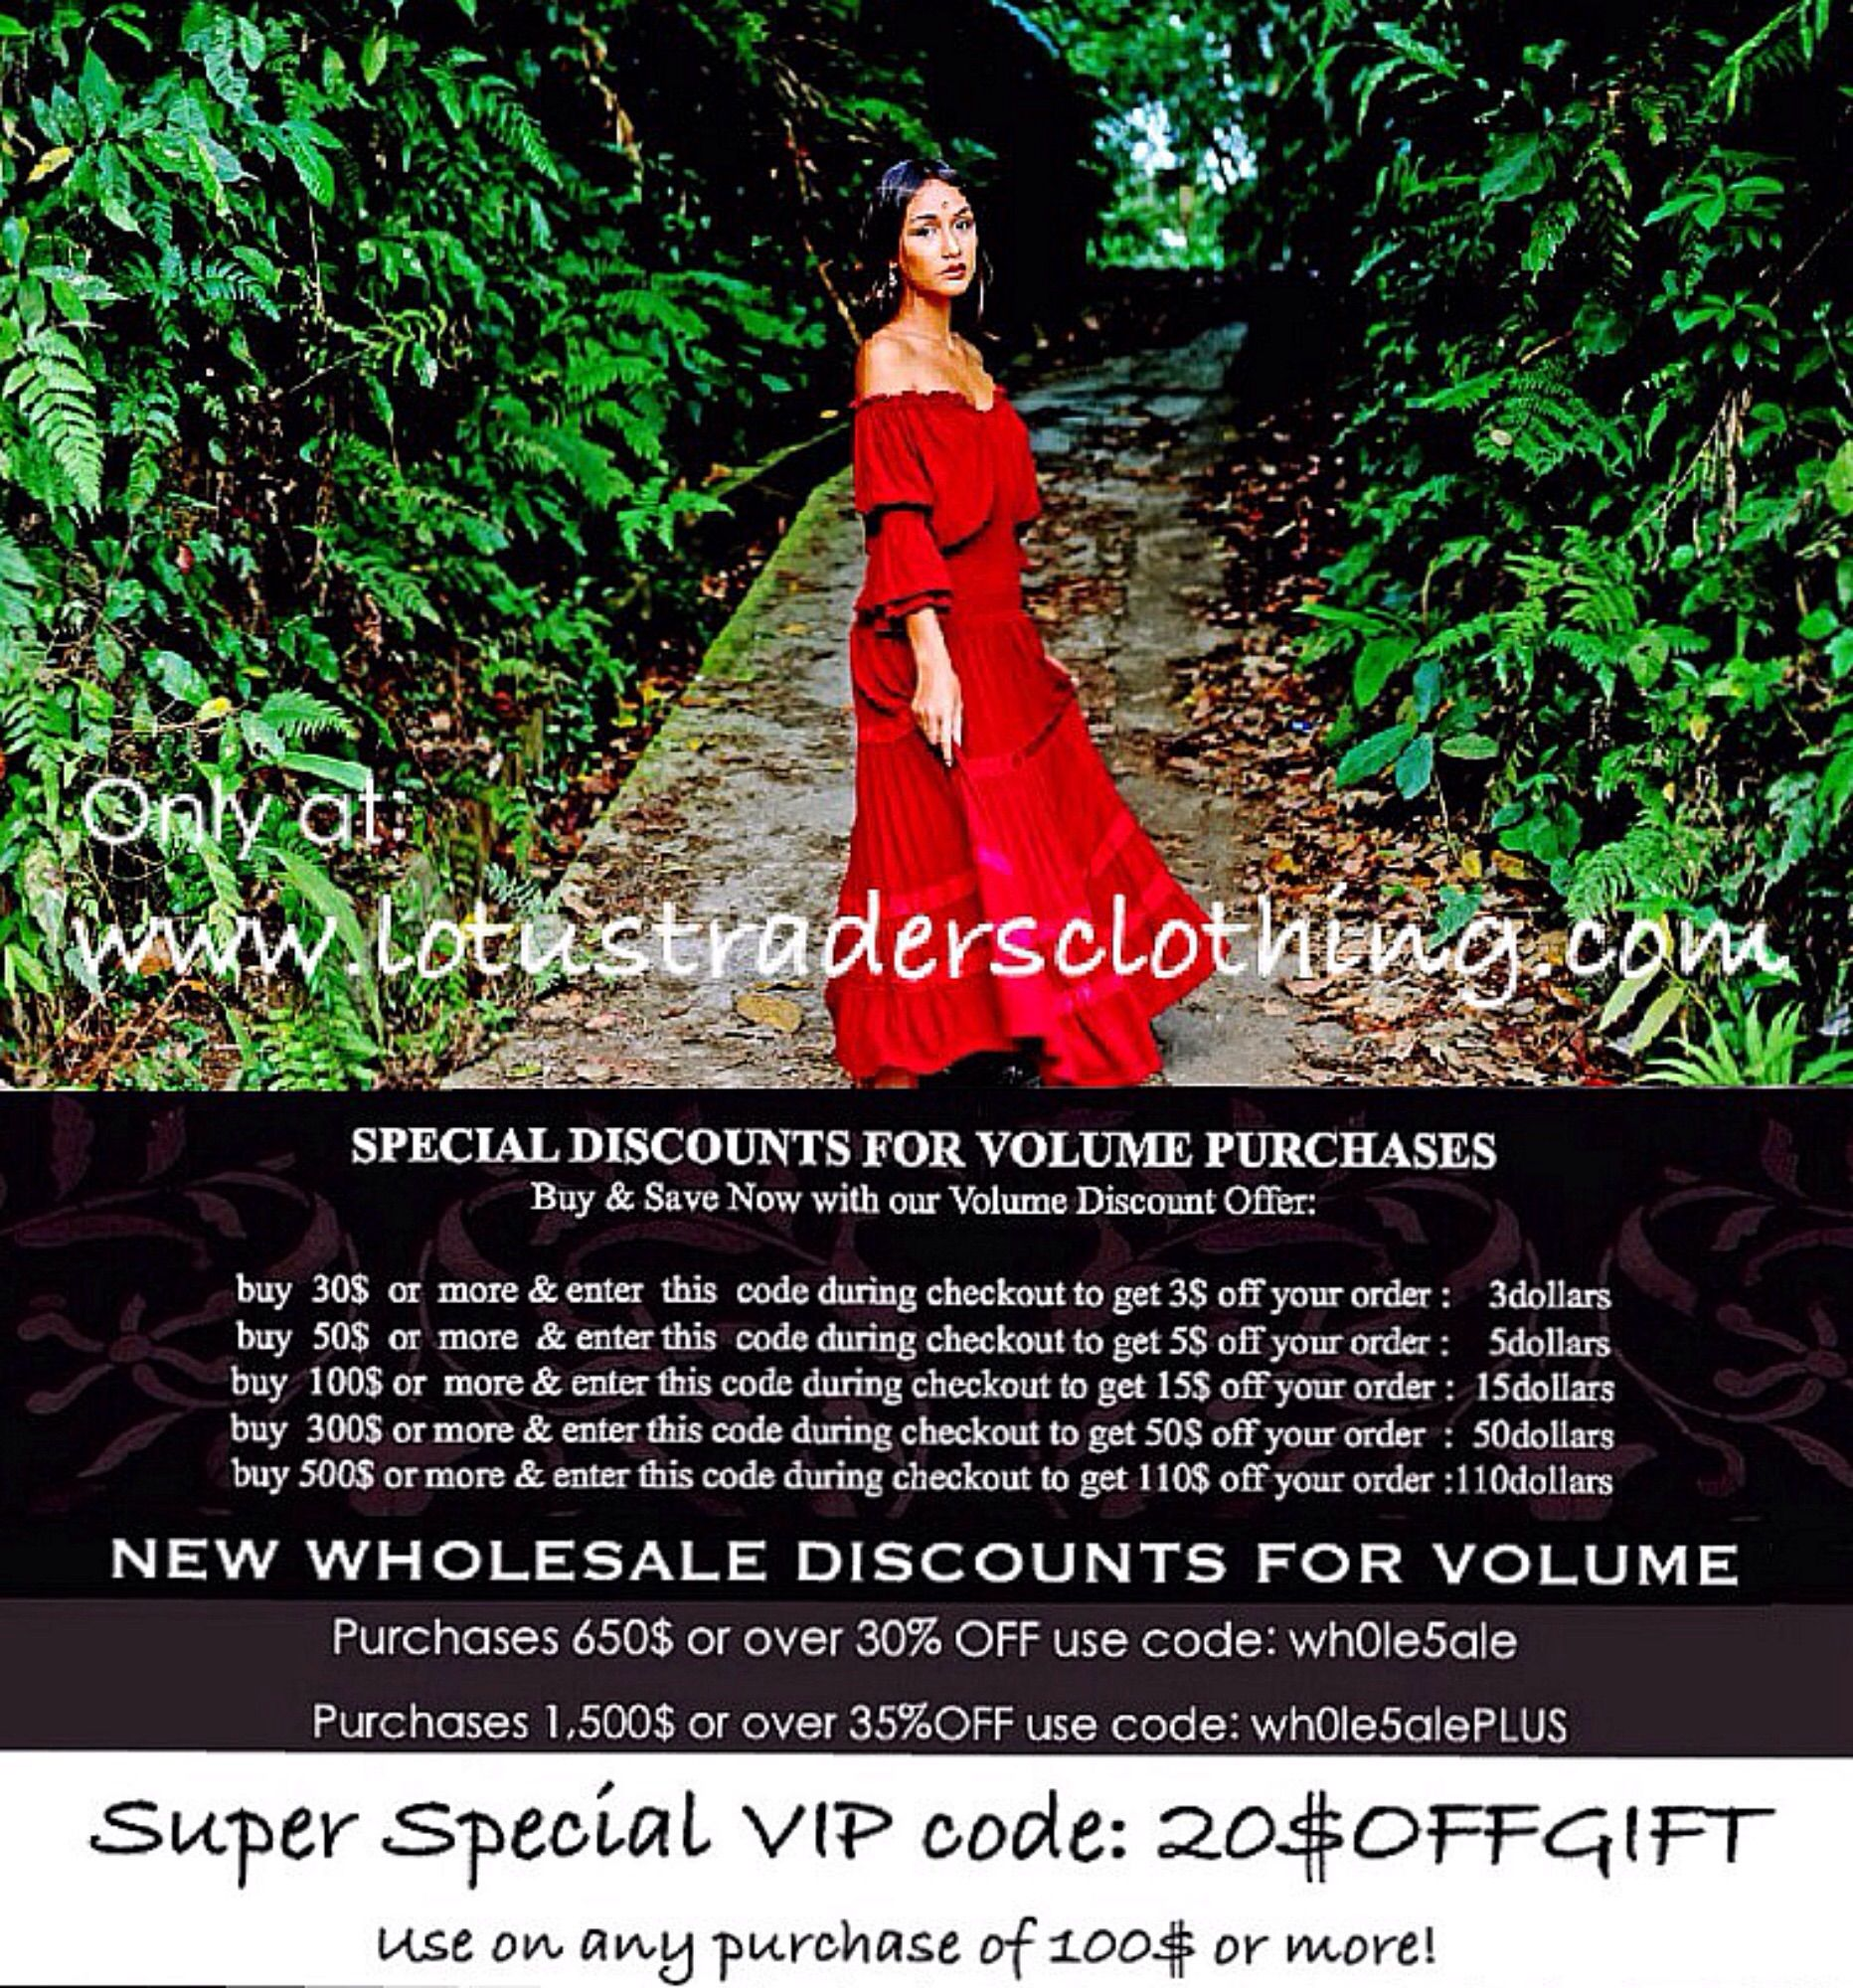 Please contact us with any questions you may have in regards to these #offers and #deals as detailed in this flyer.  ~Lotus Traders Clothing~  #Lagenlook #Boho #Chic #Bali #Batik #Hippie #Gypsy #Stunning #Misses #Plussize #Unique #Womensclothing